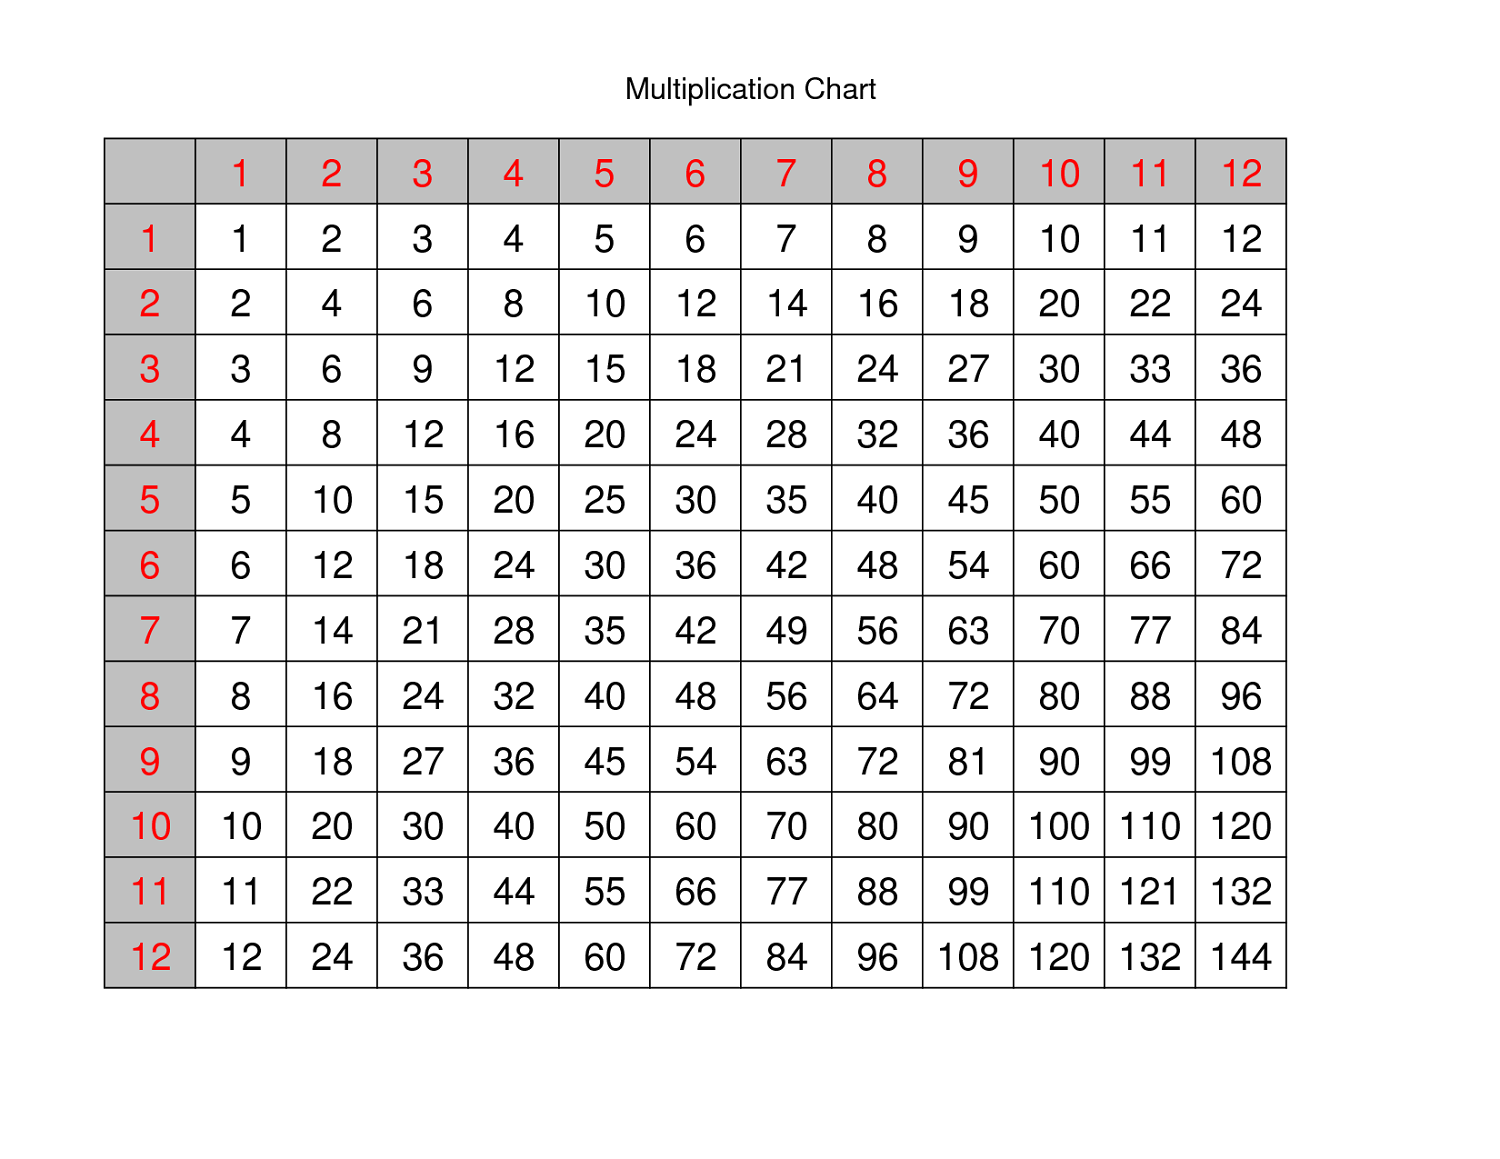 multiply-chart-table-learning